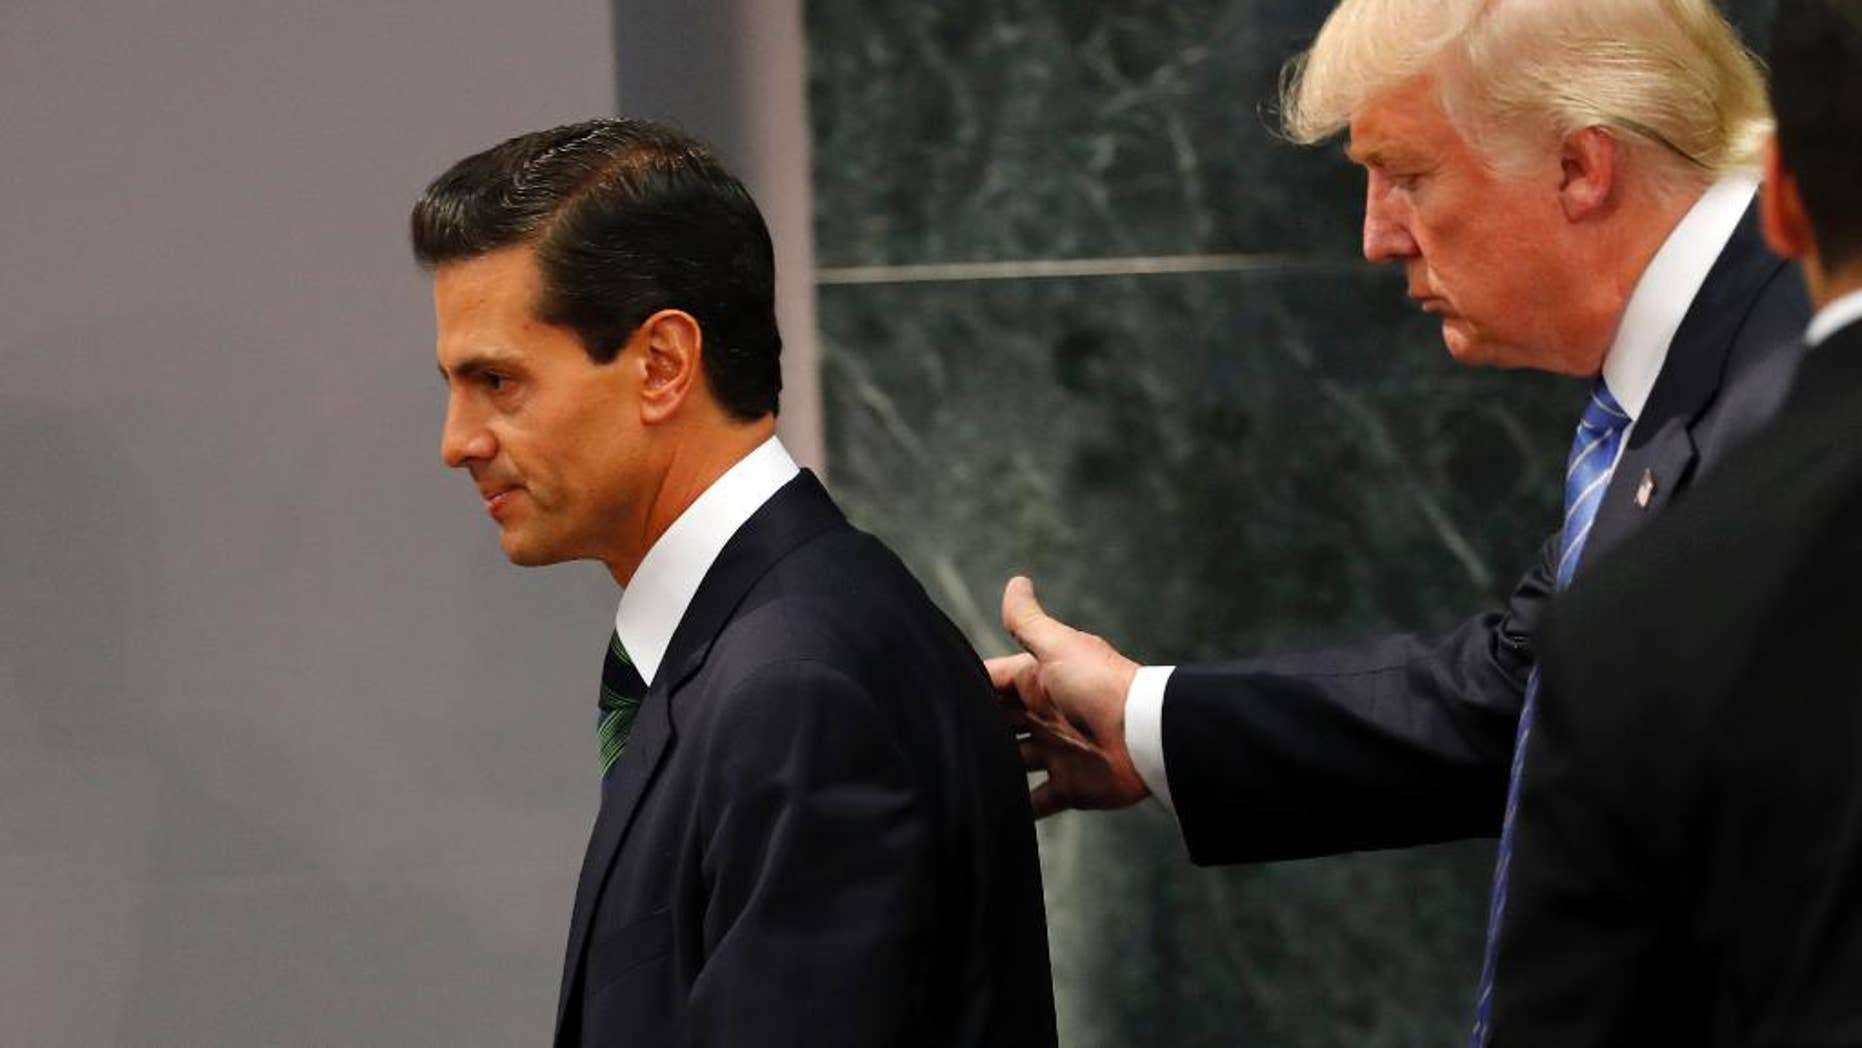 FILE - In this Aug. 31, 2016, file photo, Republican presidential nominee Donald Trump walks with Mexico's President Enrique Pena Nieto at the end of their joint statement at Los Pinos, the presidential official residence, in Mexico City. President Pena Nieto said Sunday, Oct. 23, that he could have done a better job handling the controversial meeting with the Republican candidate. (AP Photo/Dario Lopez-Mills, File)